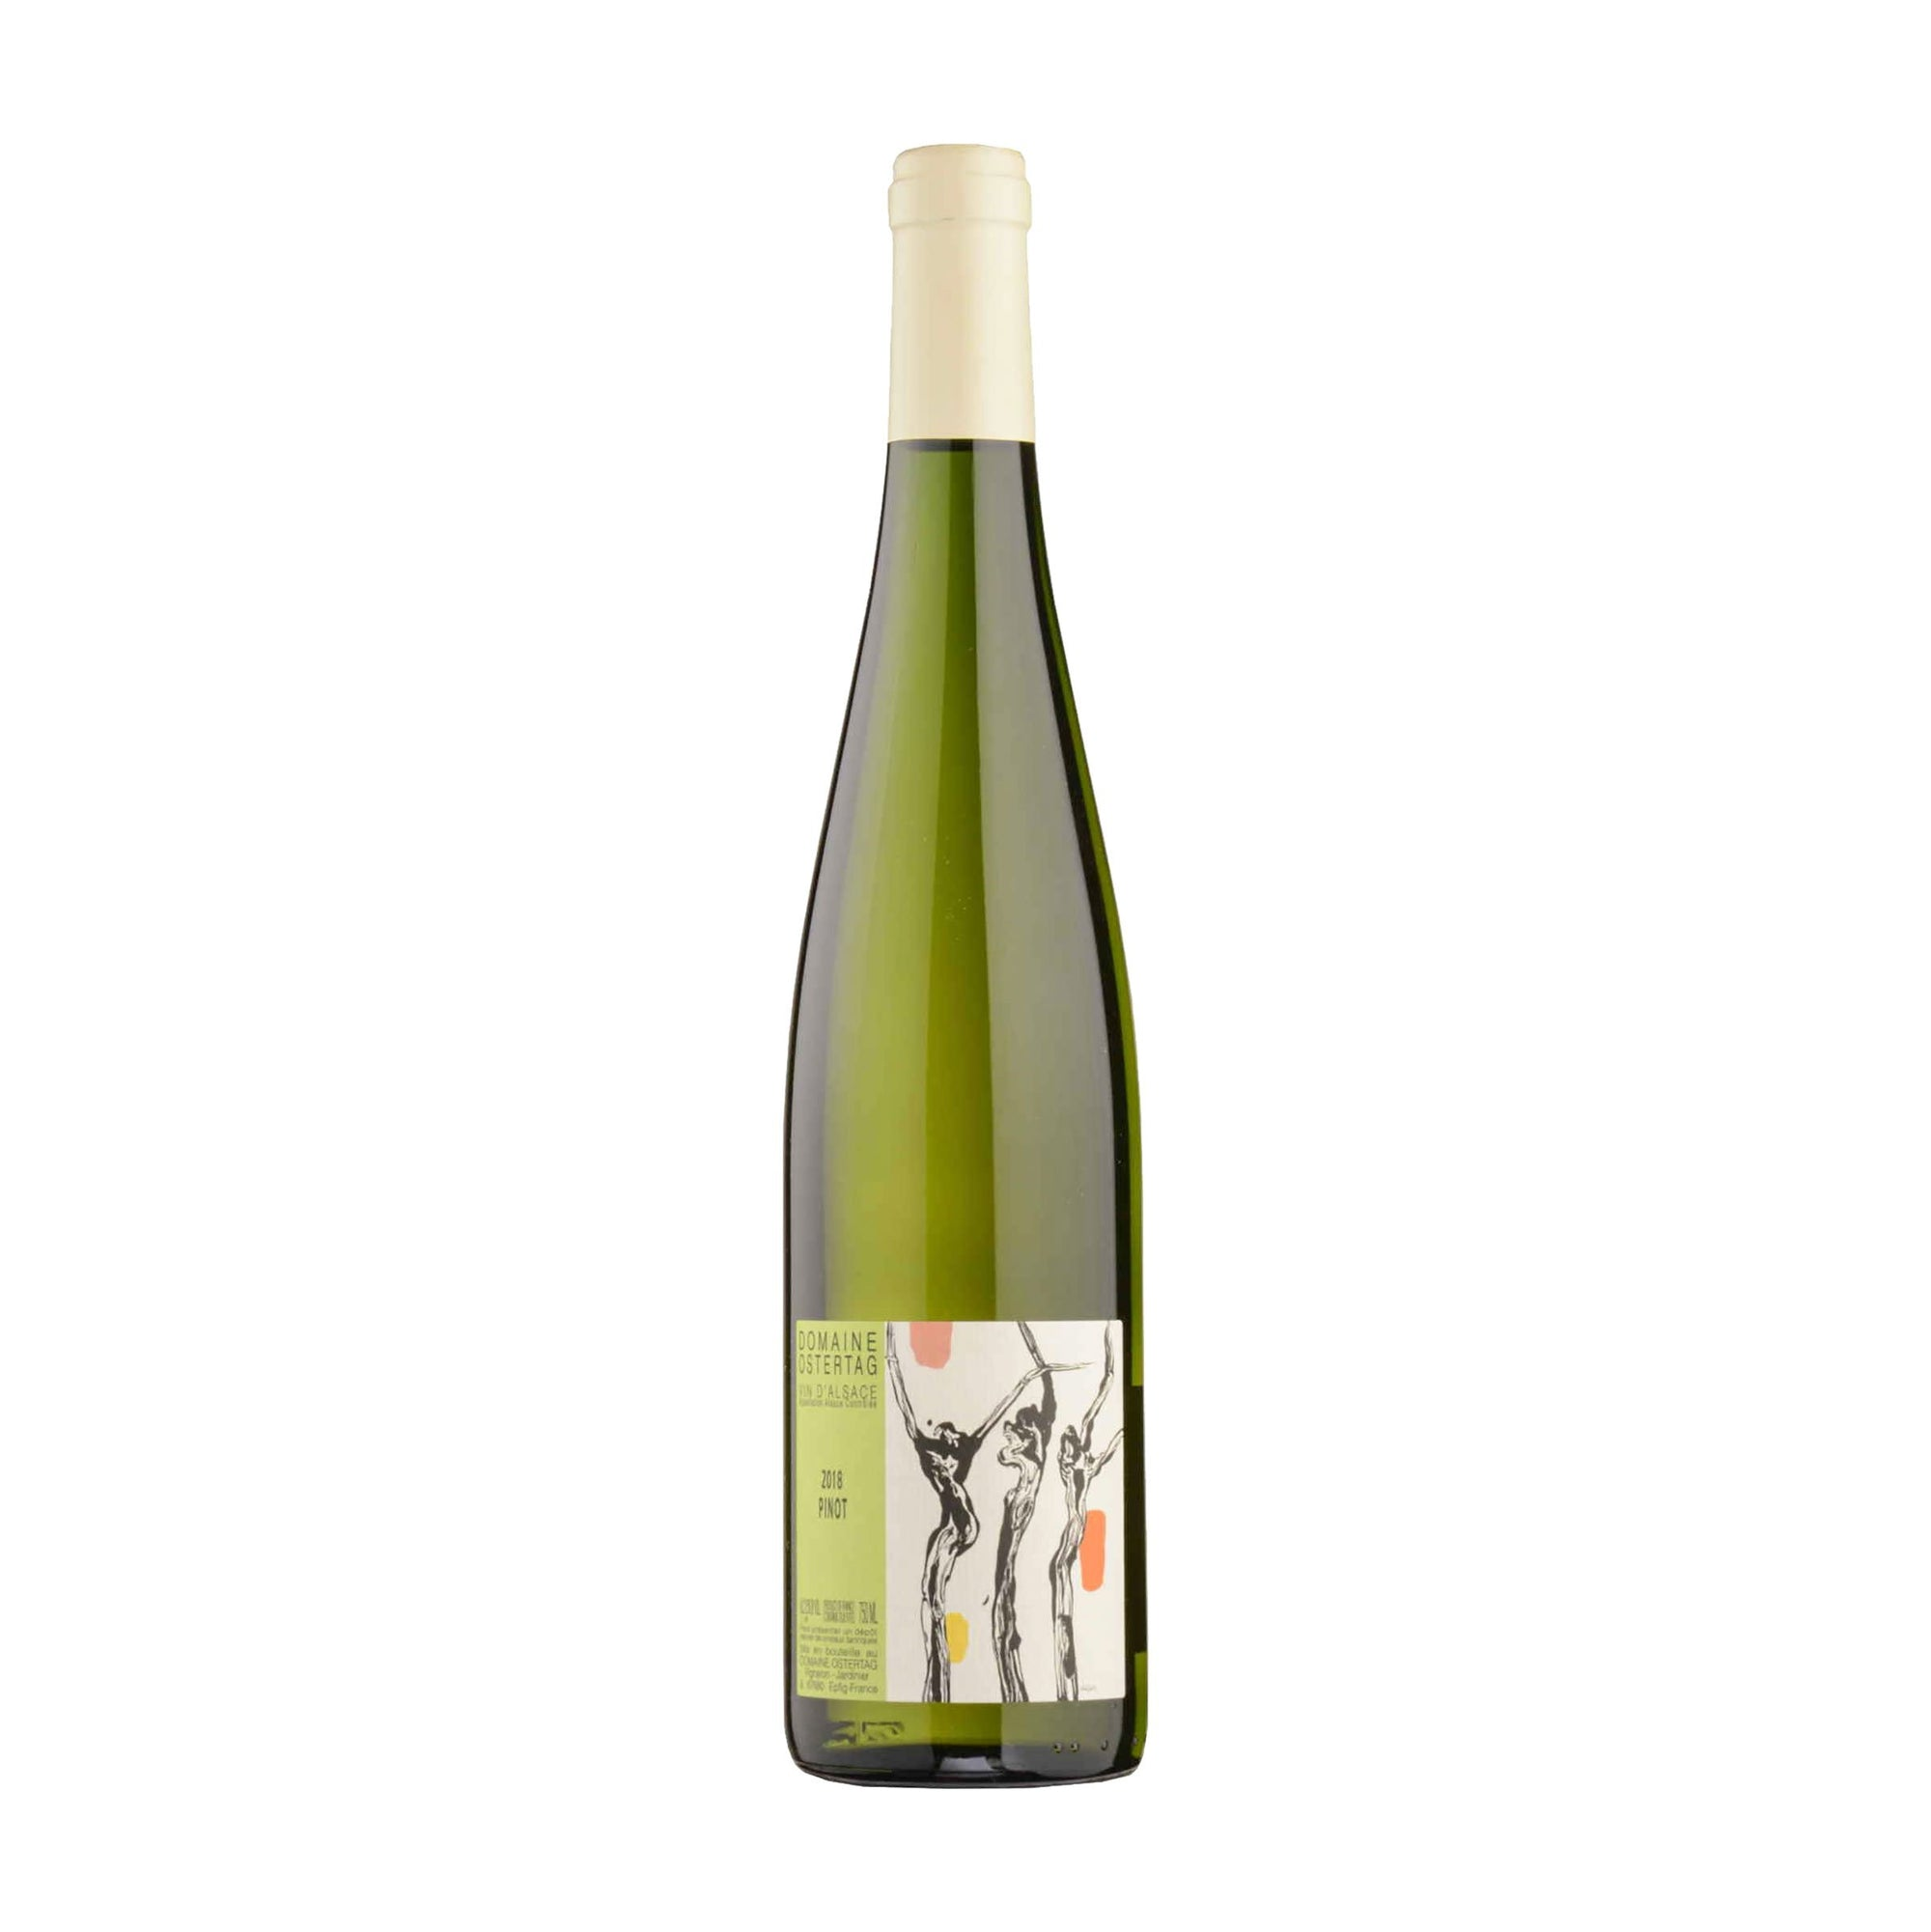 White Wine Domaine Ostertag 'Les Jardins Barriques' Pinot Blanc Alsace 2018 (4392663187479)